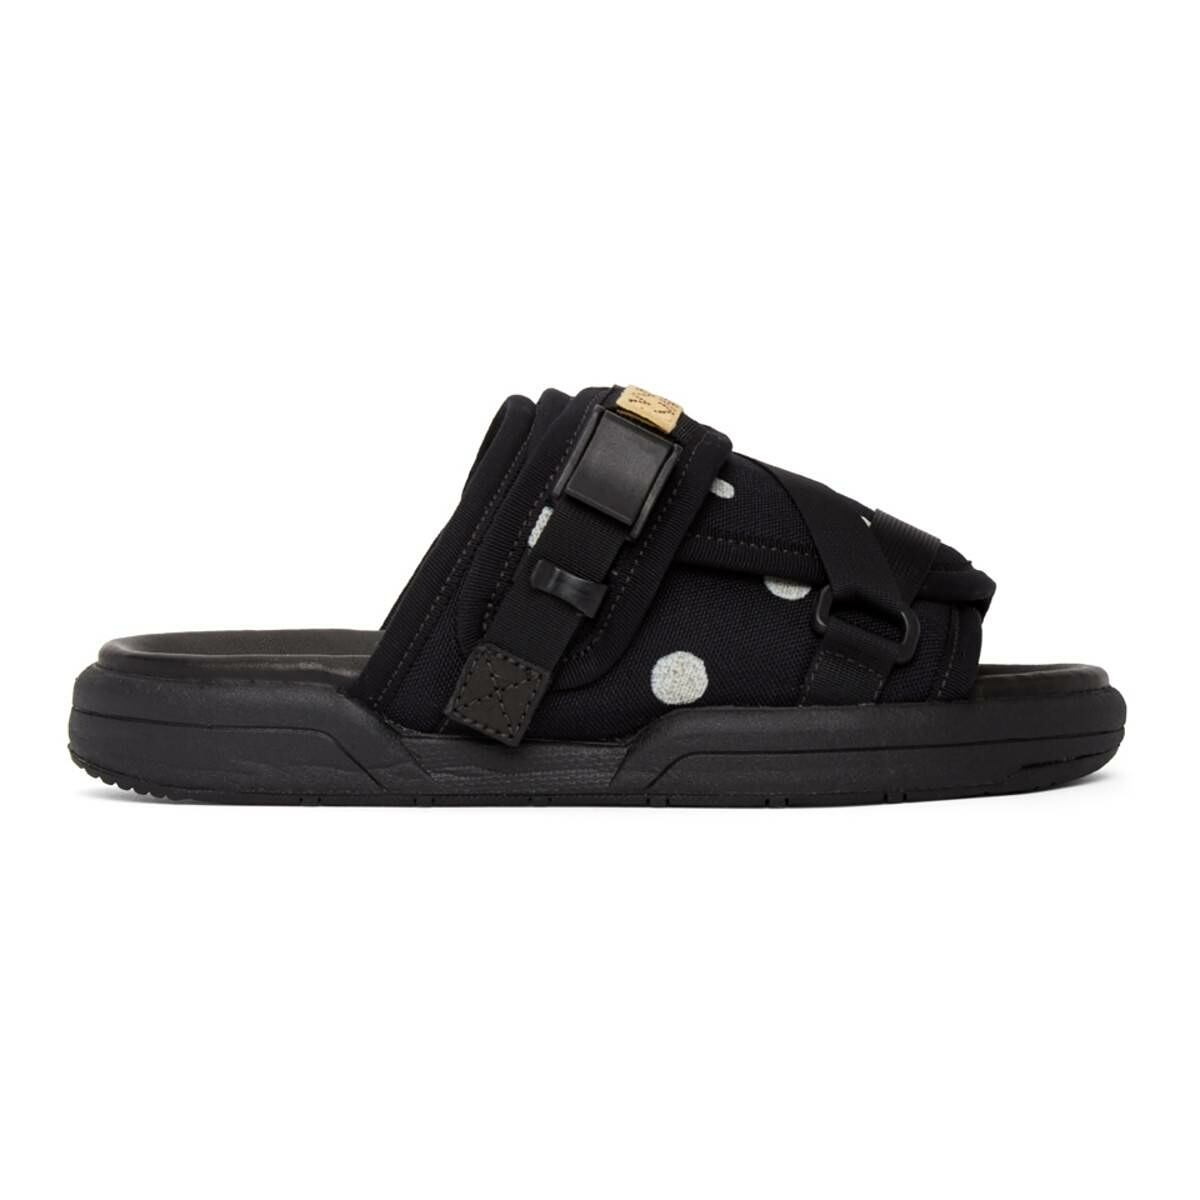 Visvim Black Christo Sandals Ssense USA MEN Men SHOES Mens SANDALS